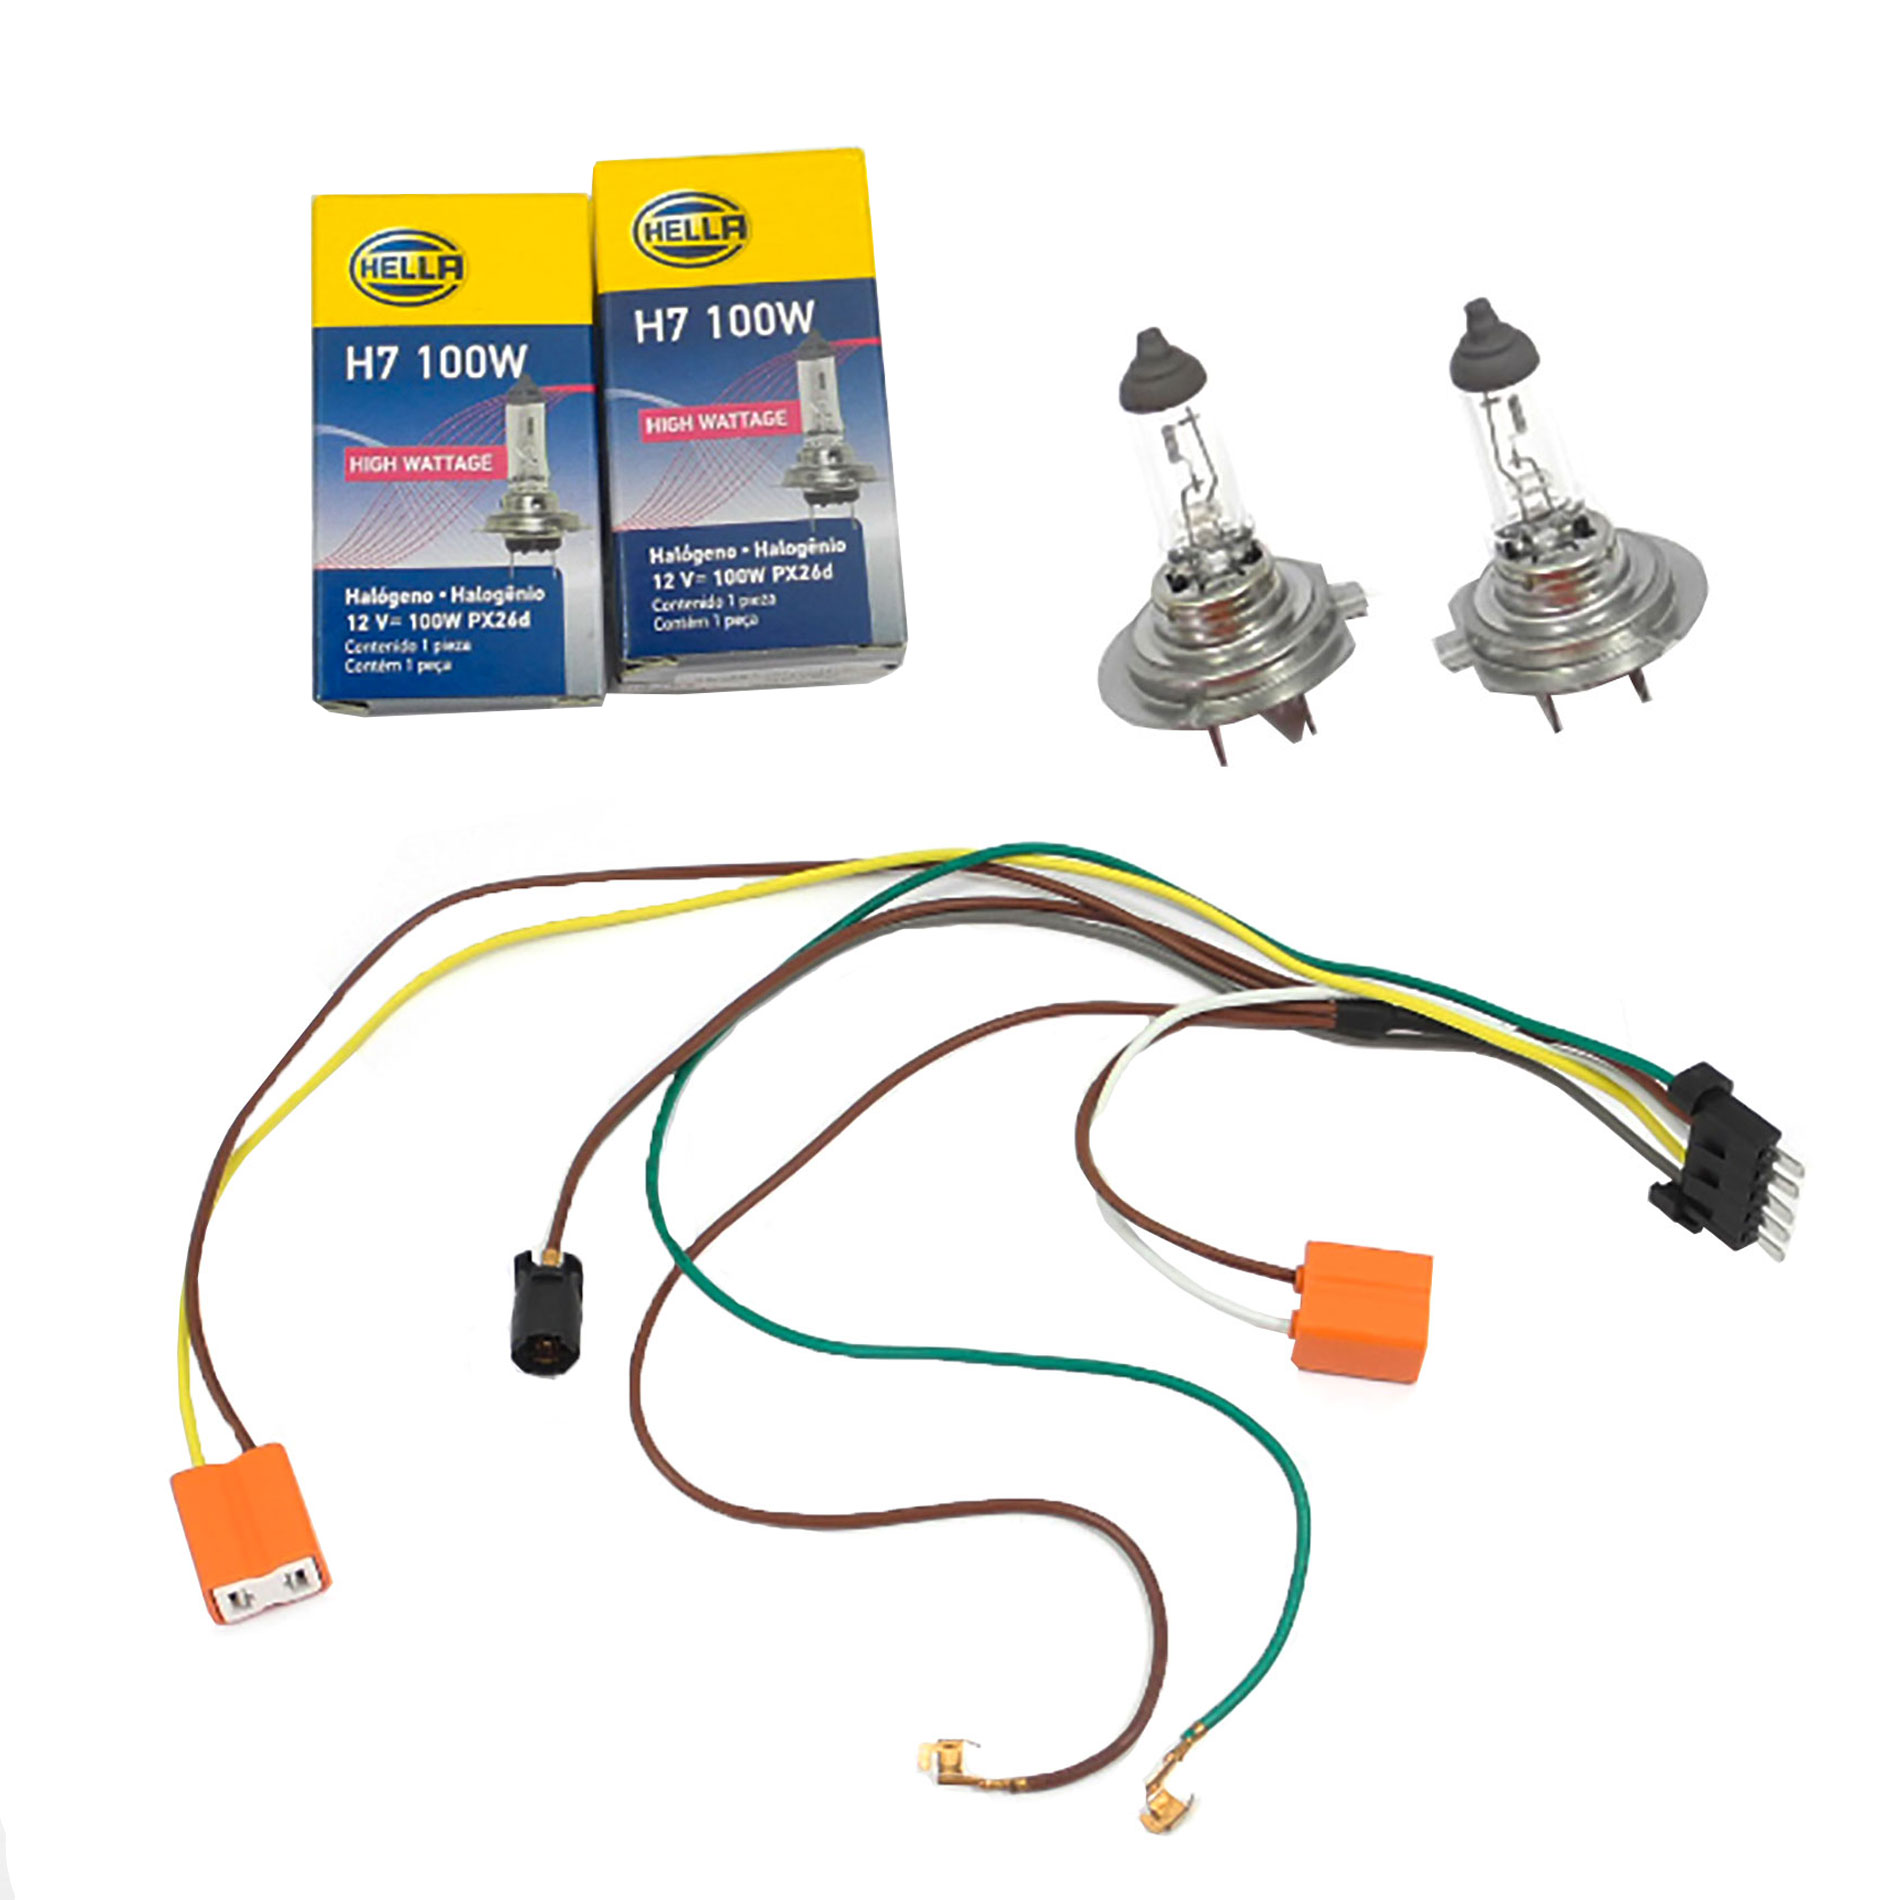 benz c32 engine wiring harness for c32 c240 c230 benz headlight wiring harness   headlight bulb  for c32 c240 c230 benz headlight wiring